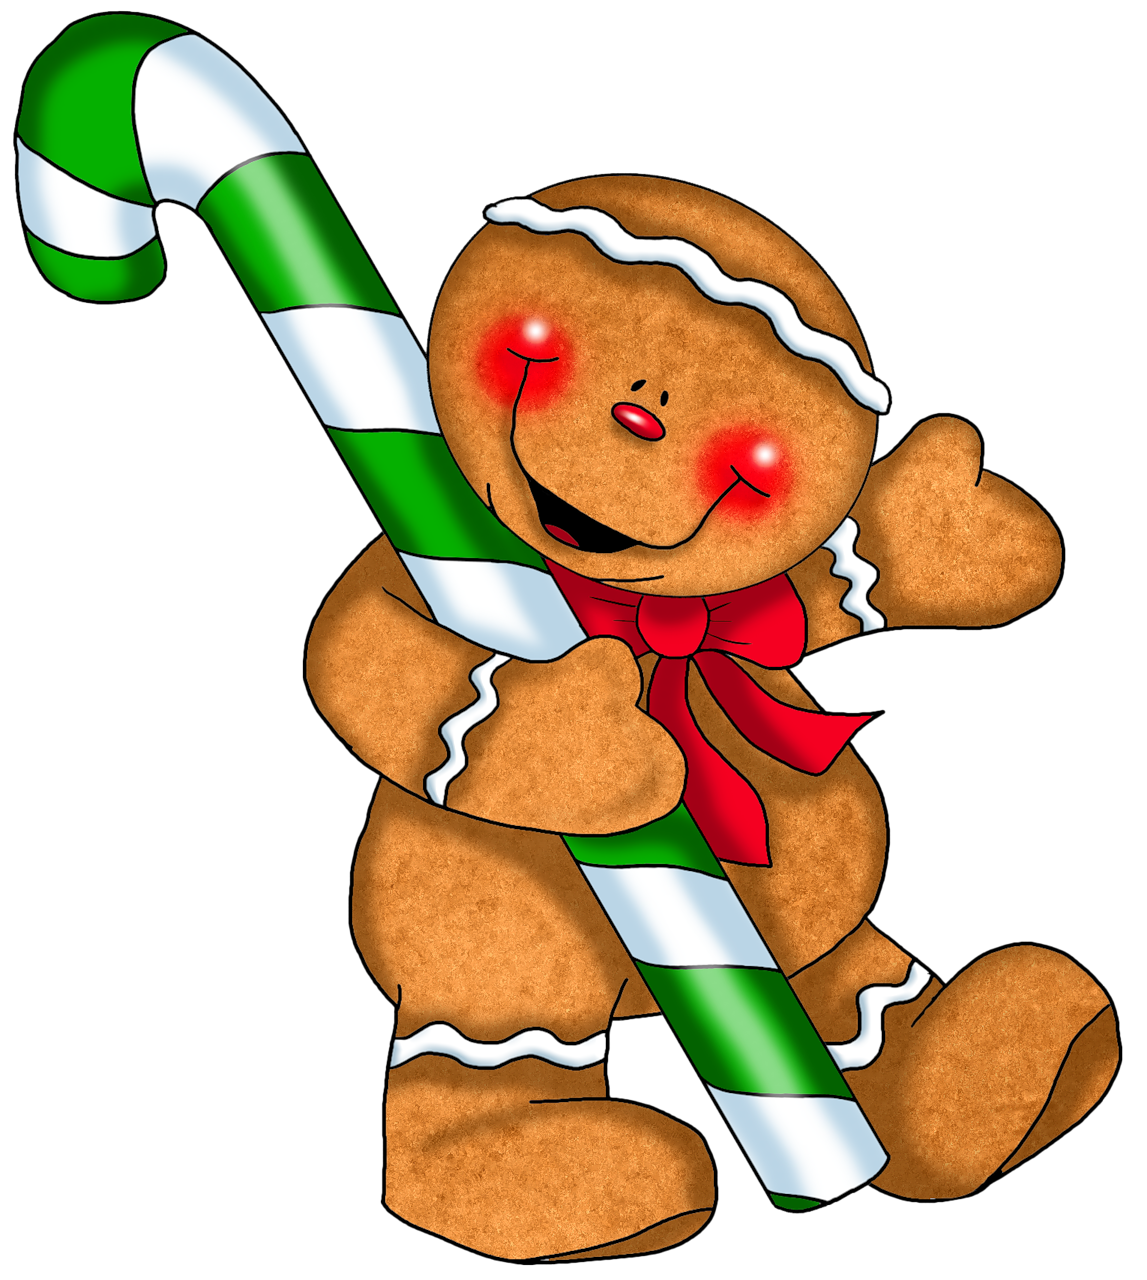 Mittens clipart cartoon. Gingerbread ornament with candy